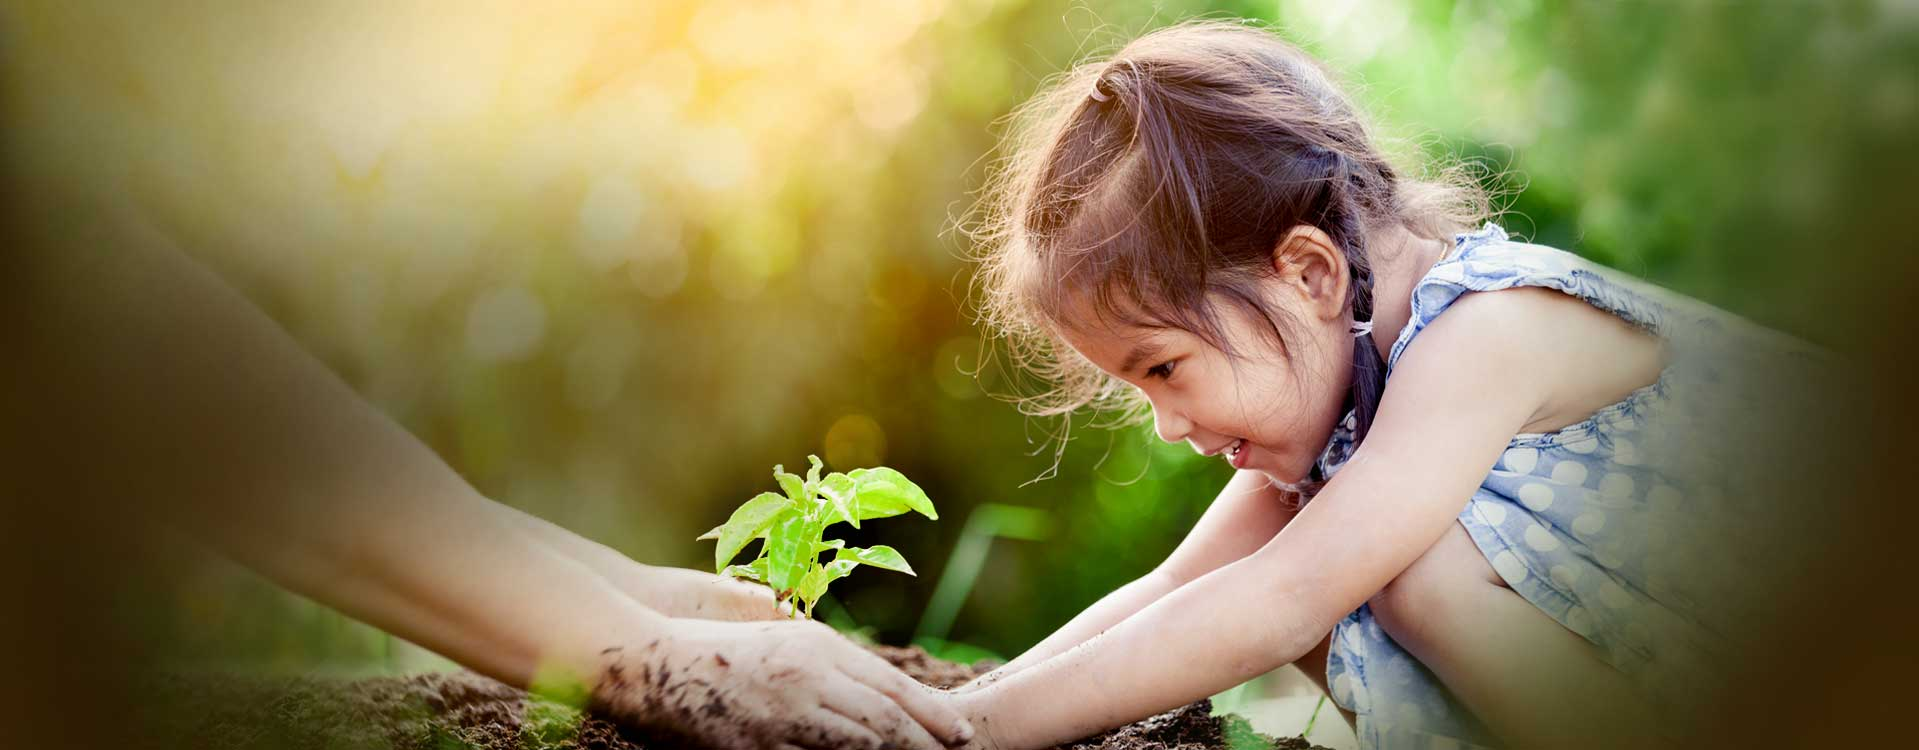 Home-banner_little-girl-plants-tree3_flipped_desktop_1919x750